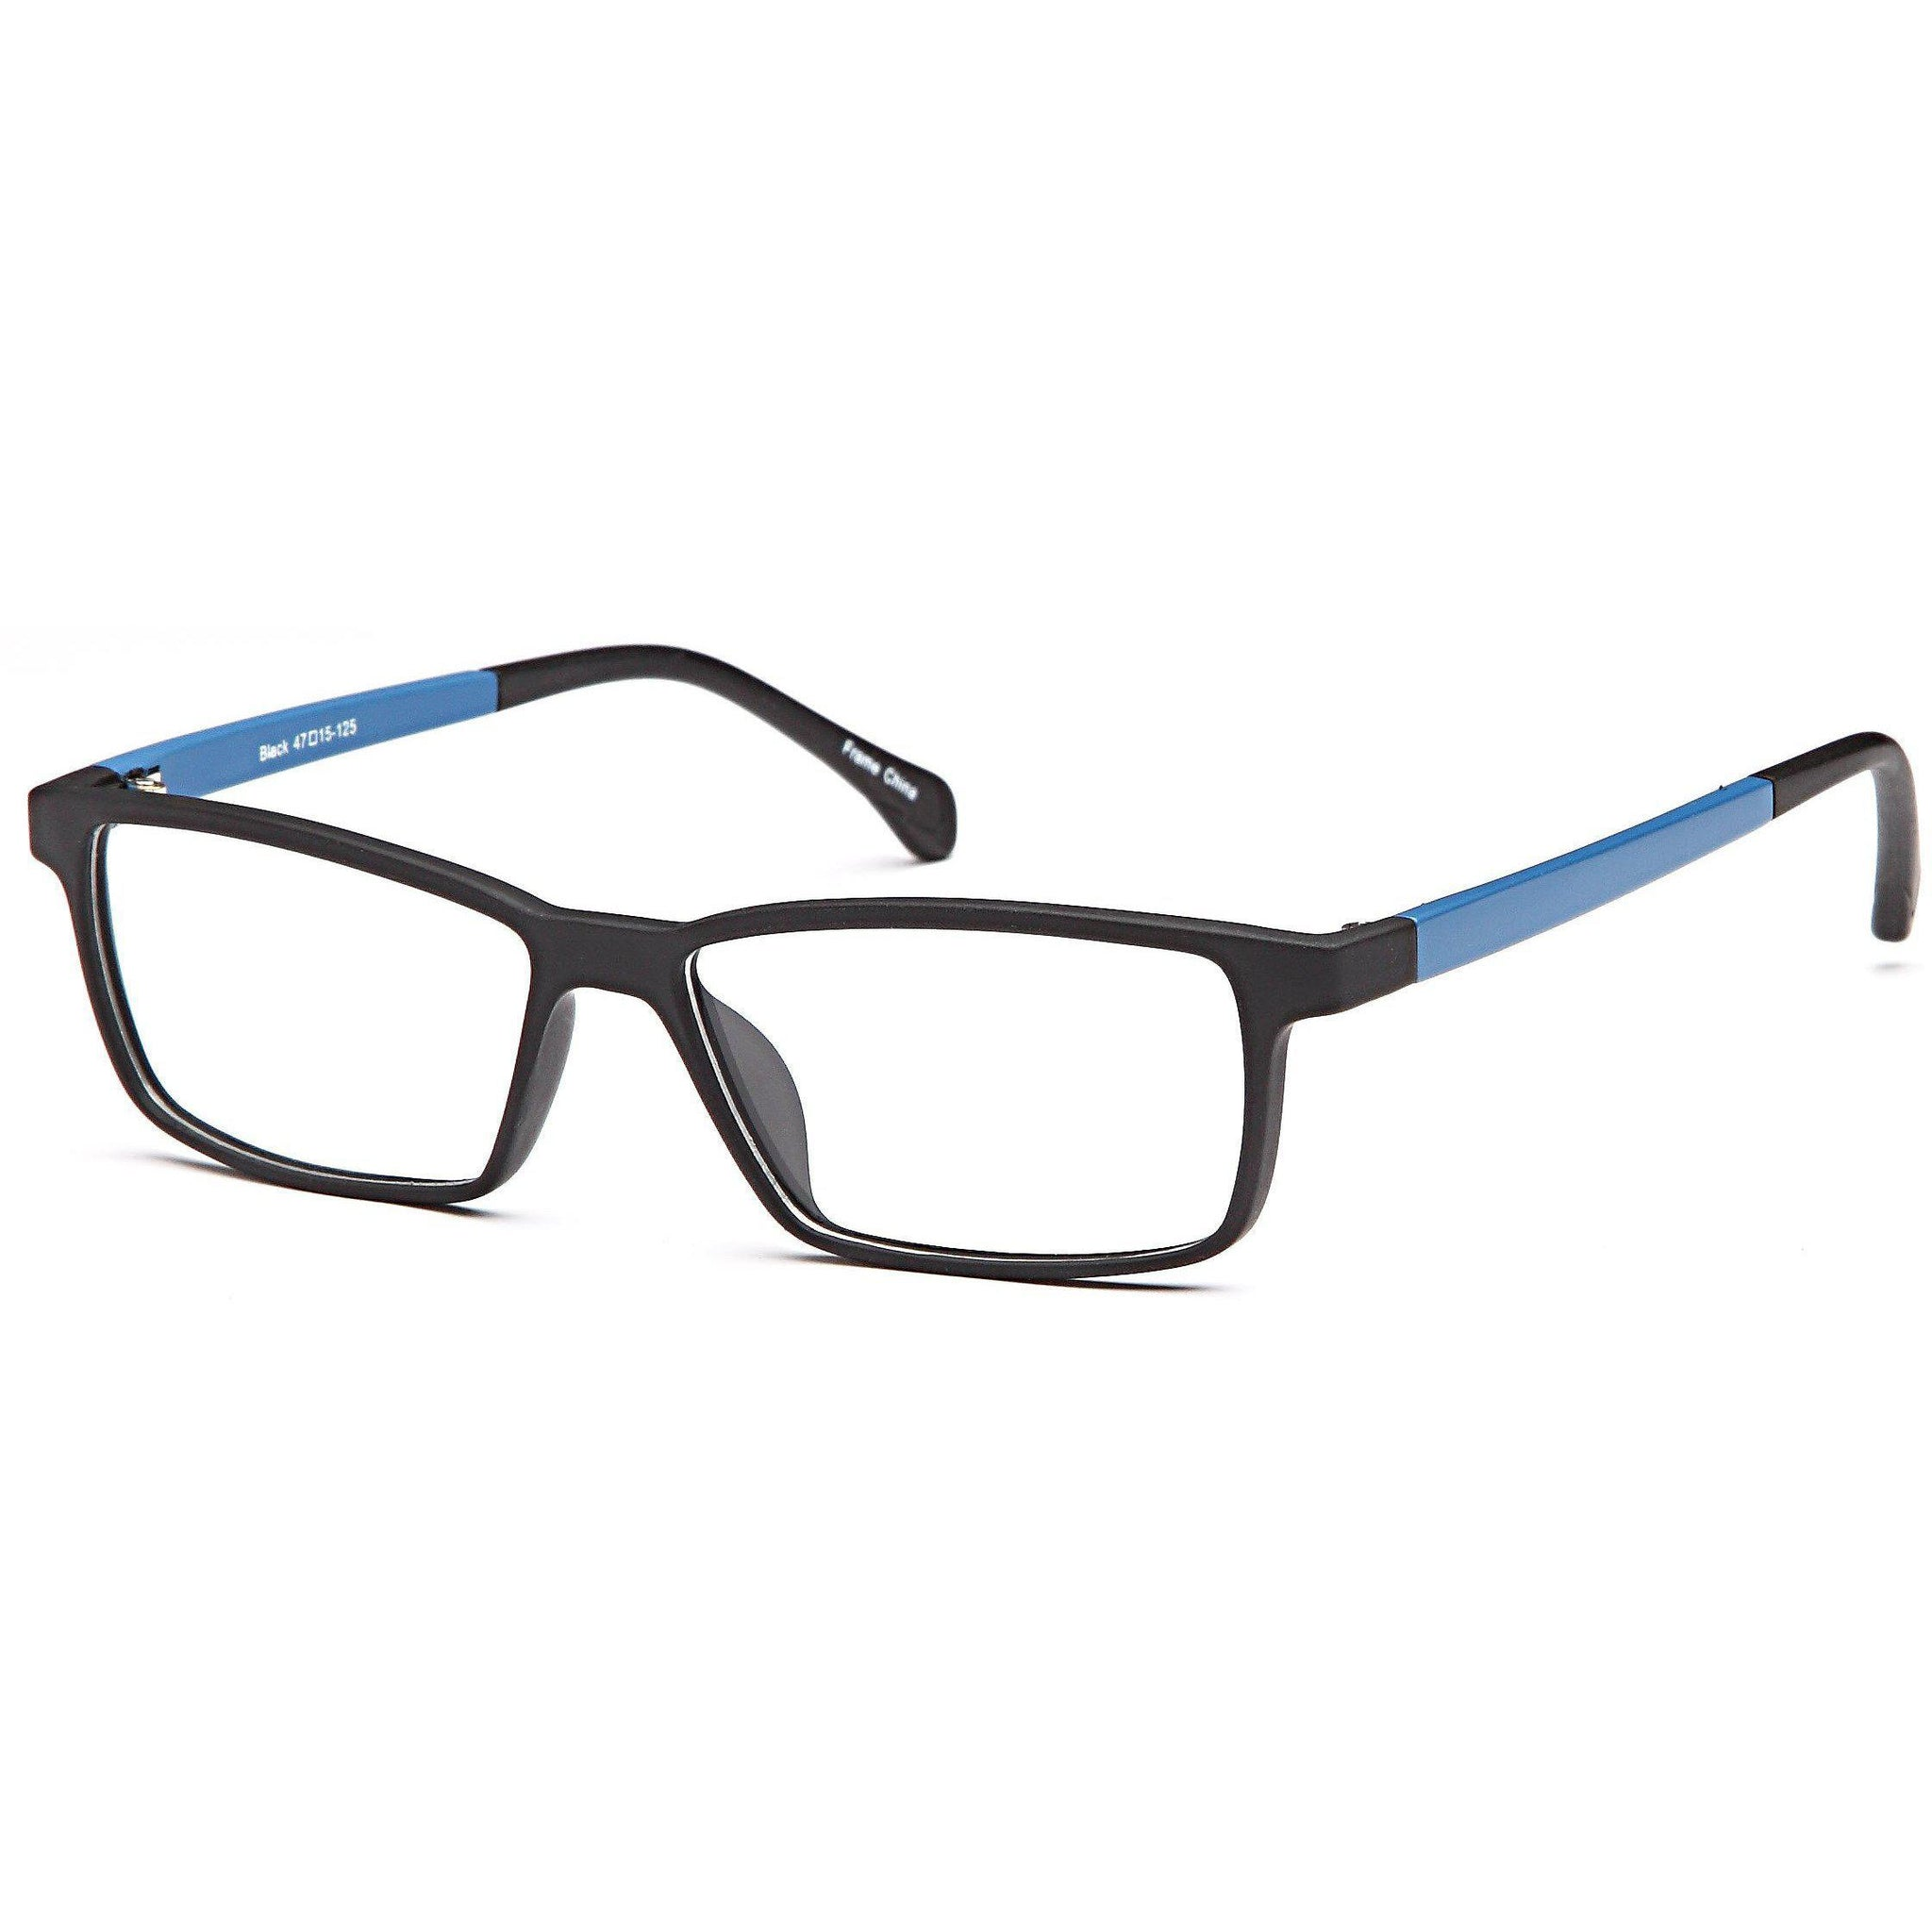 The Icons Prescription Glasses YOUTH Eyeglasses Frame